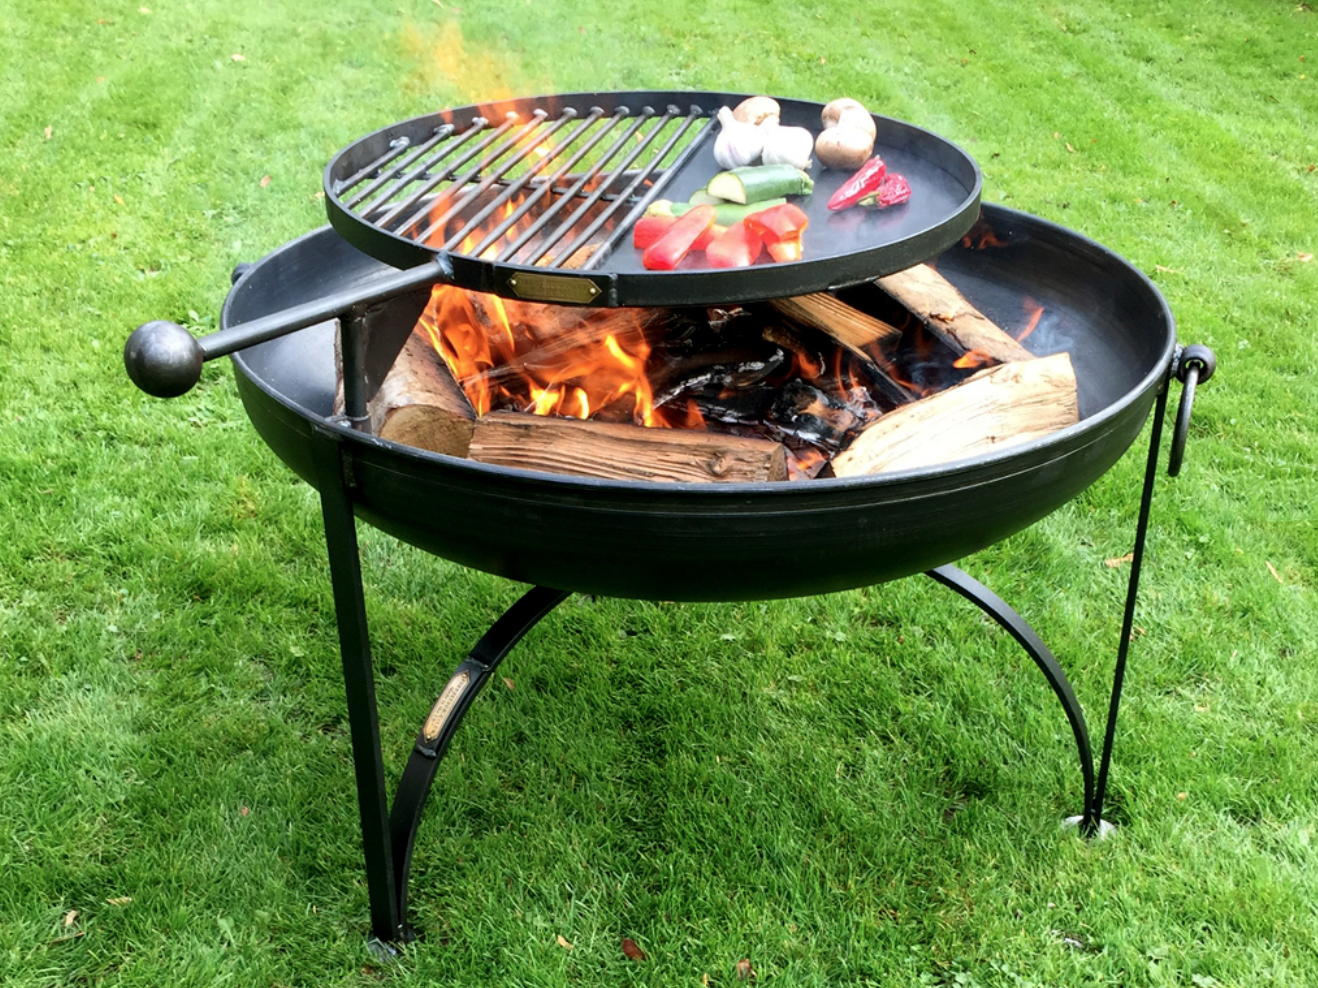 Wood-Burning Fire Pits   Practical yet functional with three sizes available, and the swing arm is fully removable by simply lifting off post cooking allowing him to enjoy the warmth, light and atmosphere of this fire pit late into the evening.